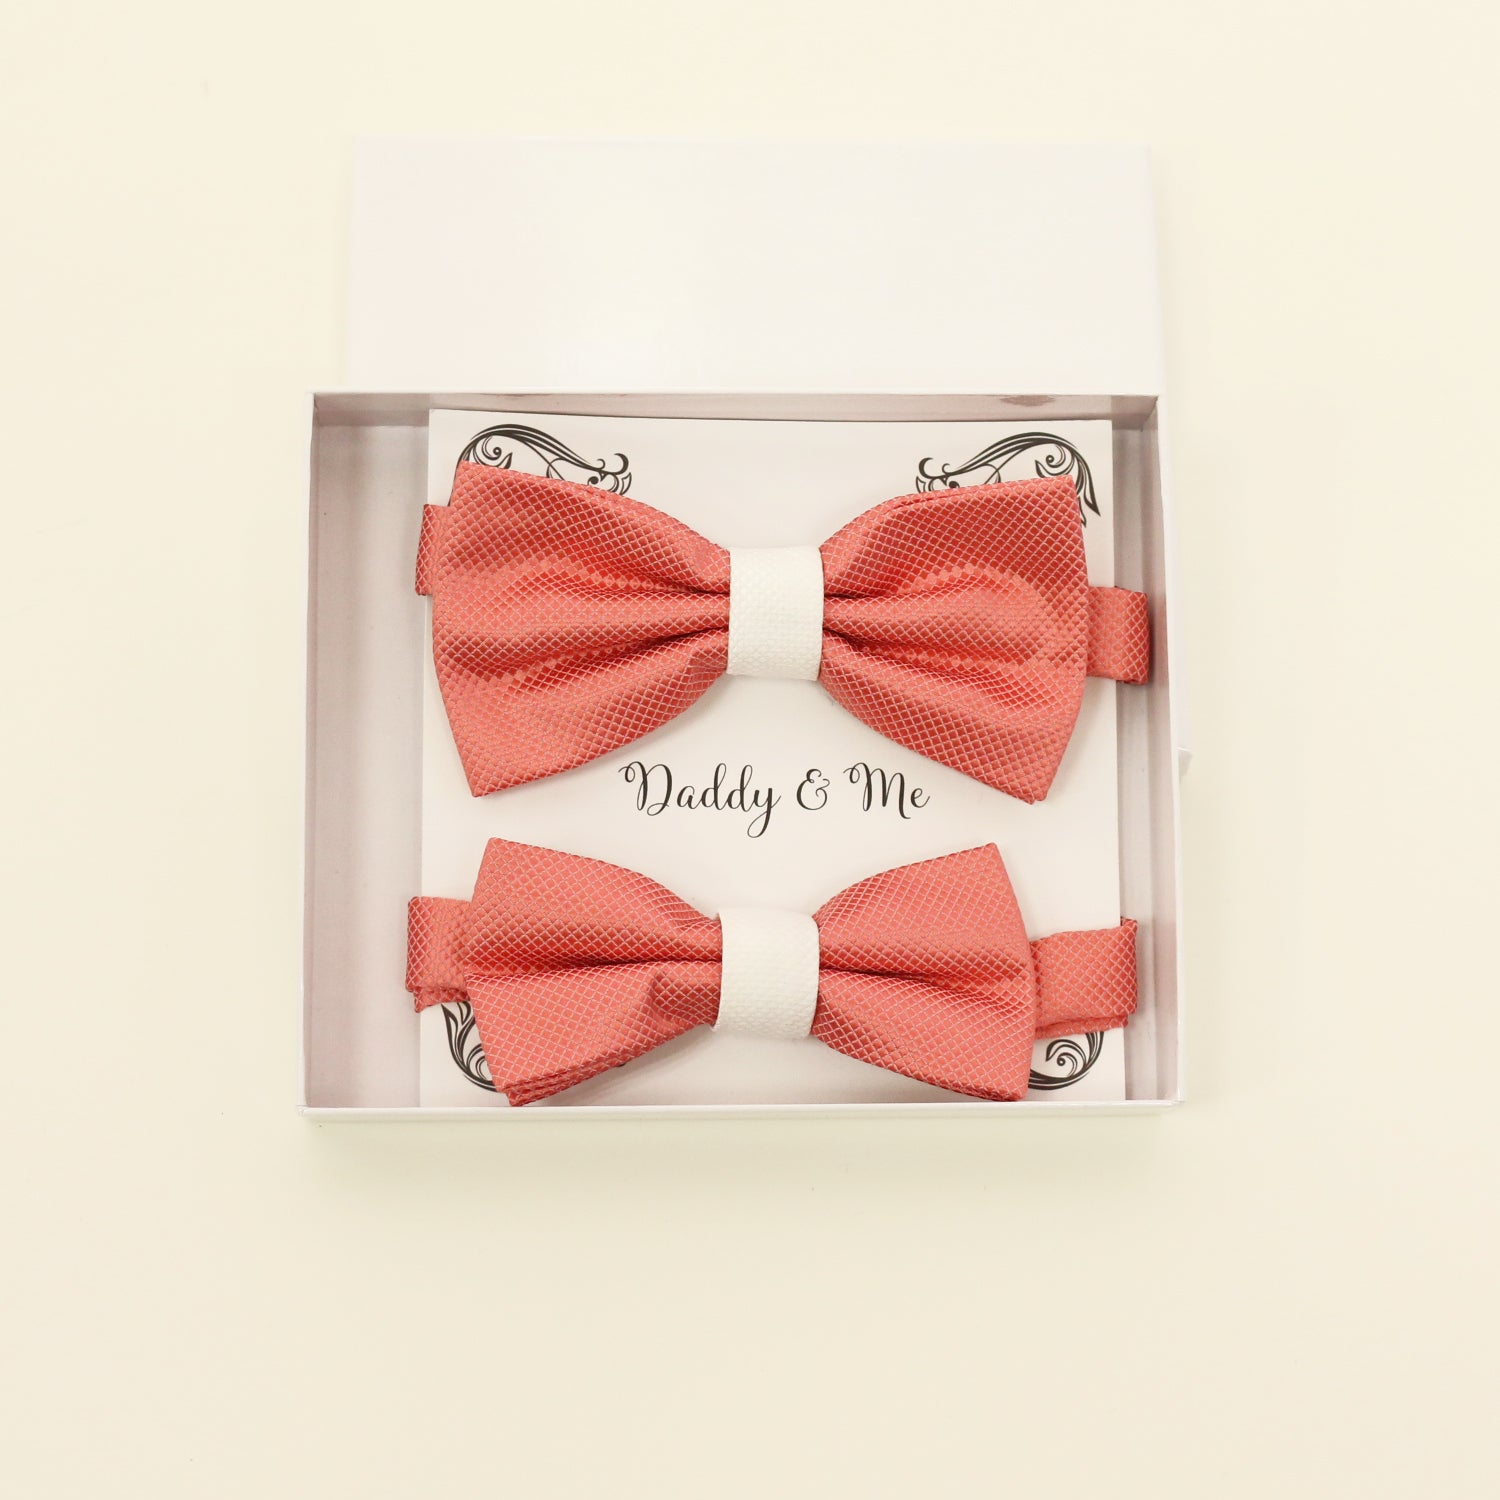 Coral and white bow tie set for daddy and son, Daddy and me gift set, Grandpa and me, Father son matching bow, Coral bow tie for kids